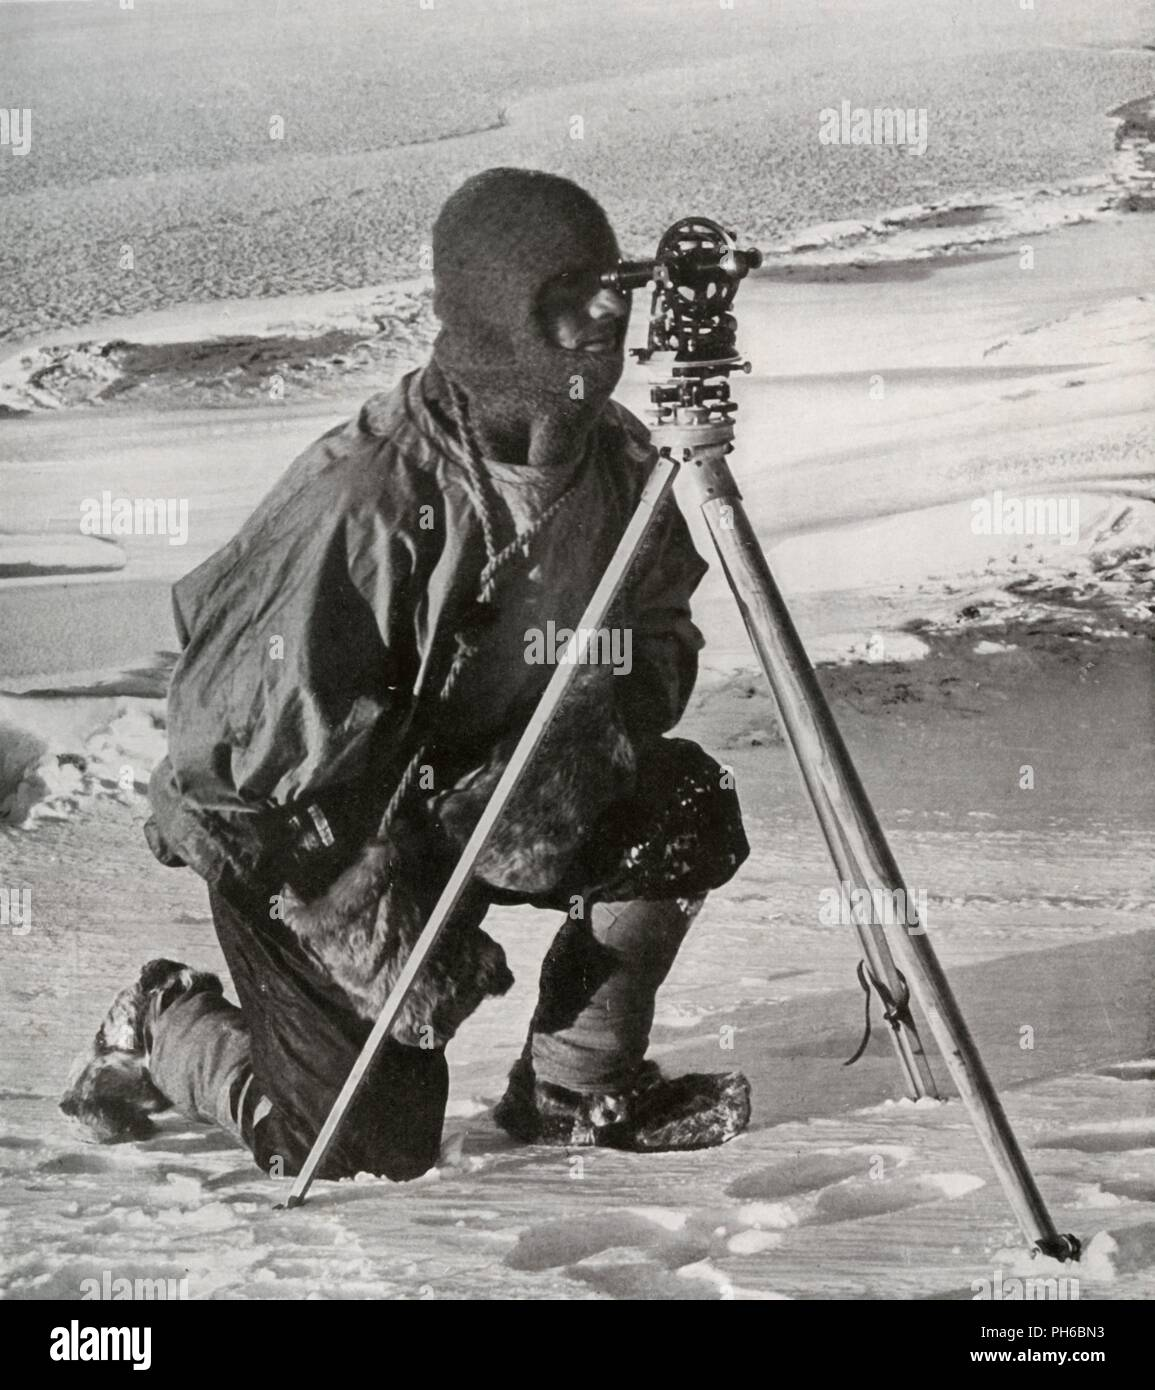 'Lieut. E. R. G. R. Evans Surveying With The Four-Inch Theodolite', October 1911, (1913).  Artist: Herbert Ponting. Stock Photo